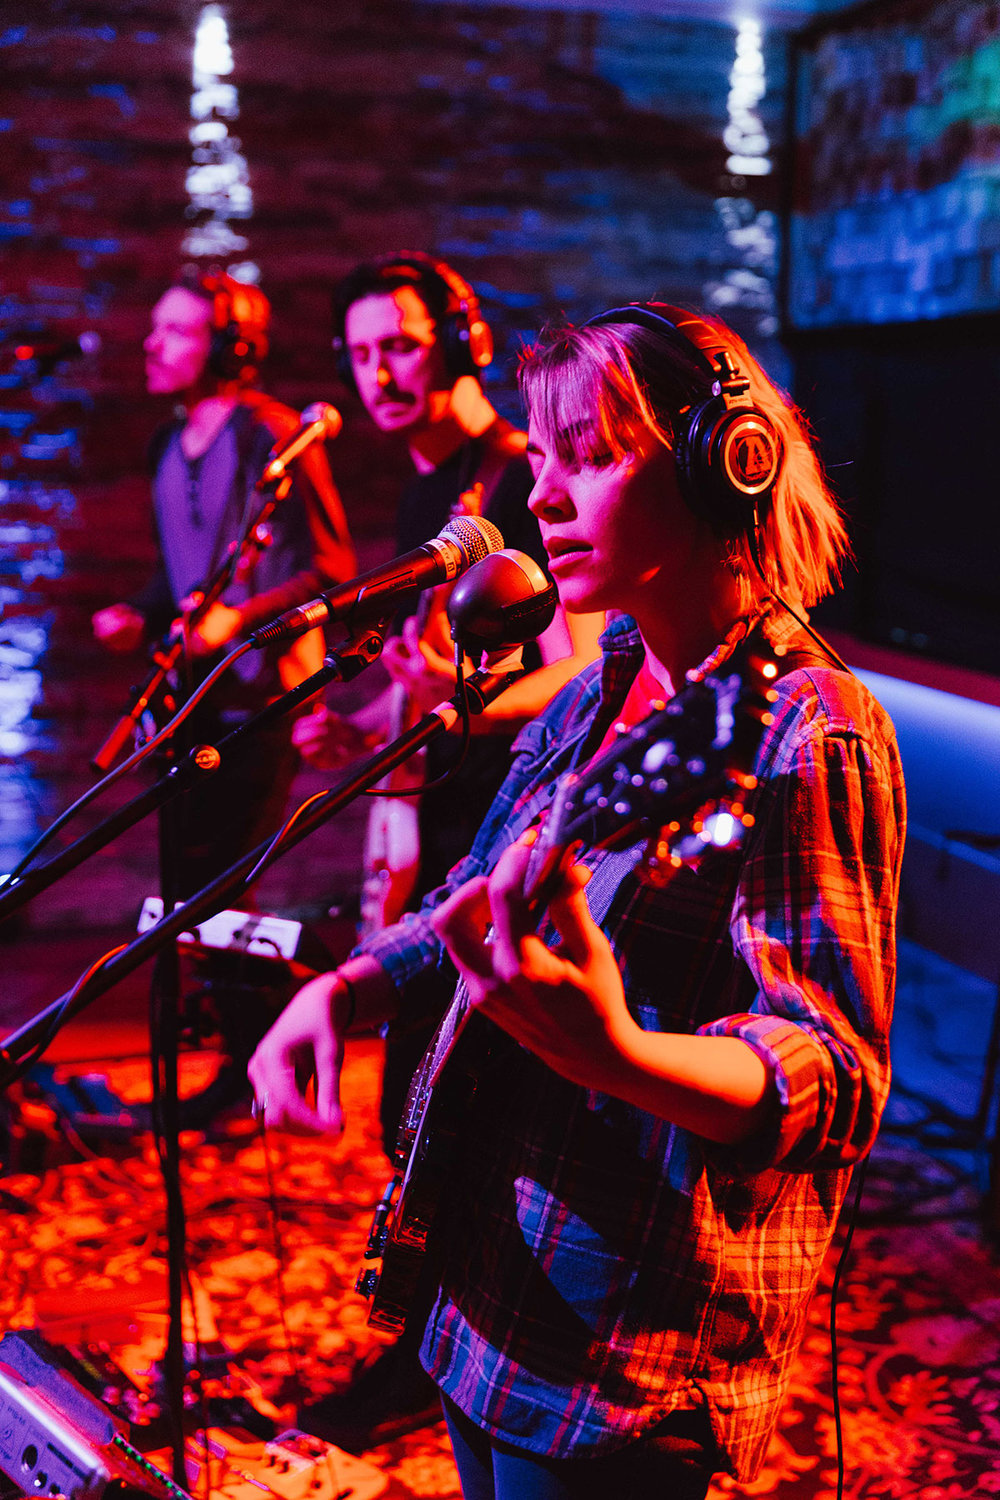 The-Cordial-Sins-on-Audiotree-Live-22.jpg